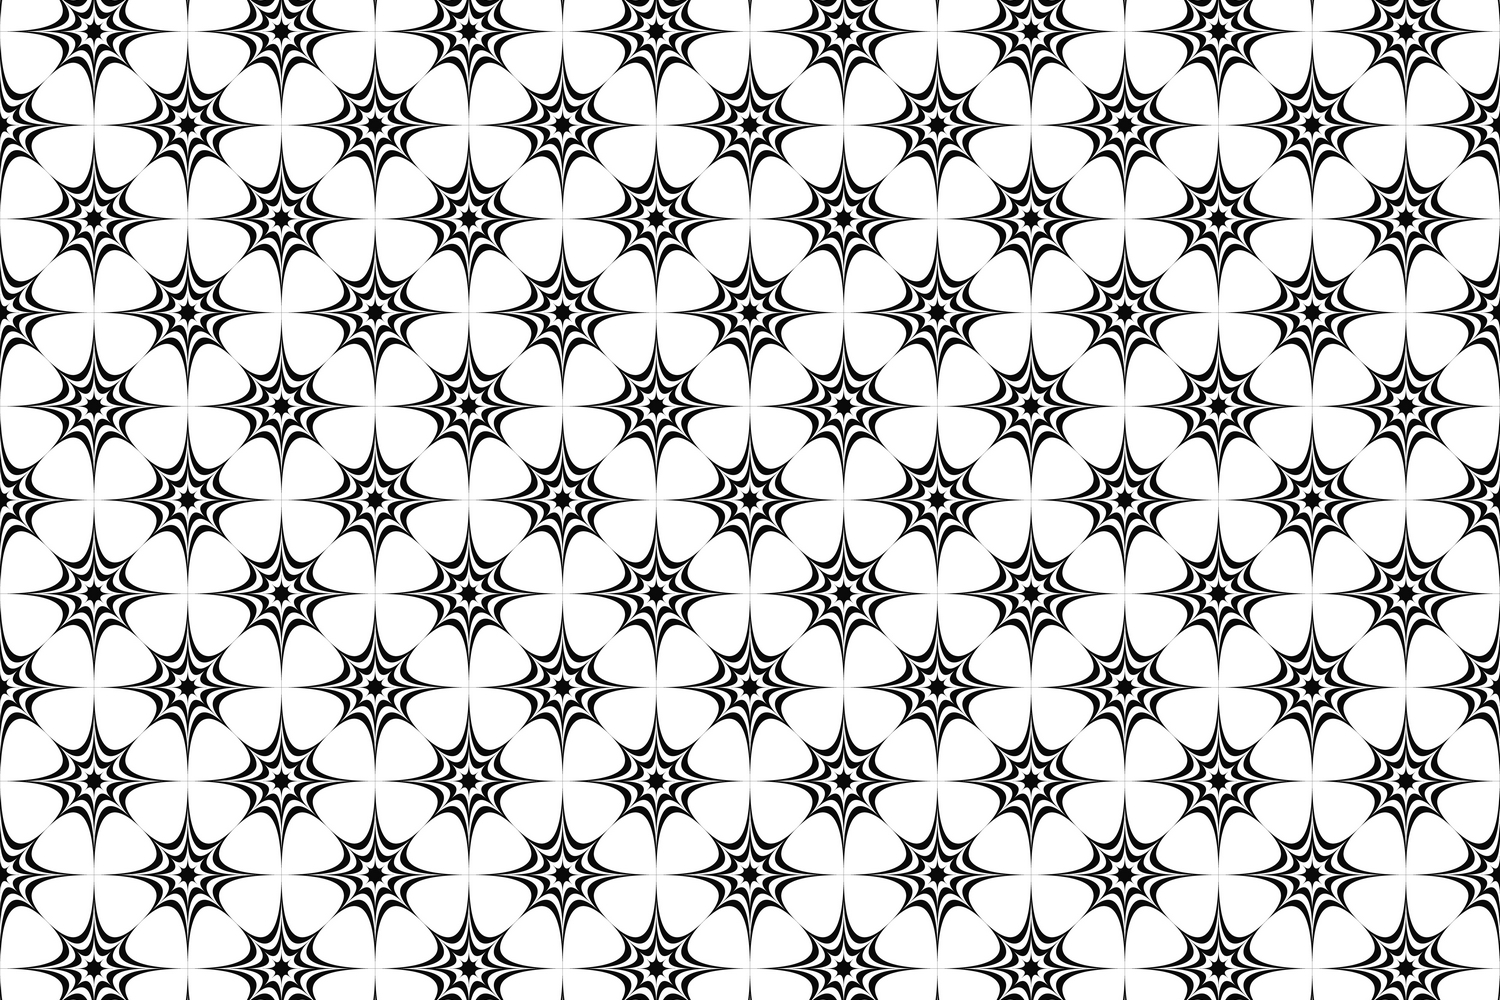 75 Monochrome Geometrical Patterns AI, EPS, JPG 5000x5000 example image 16